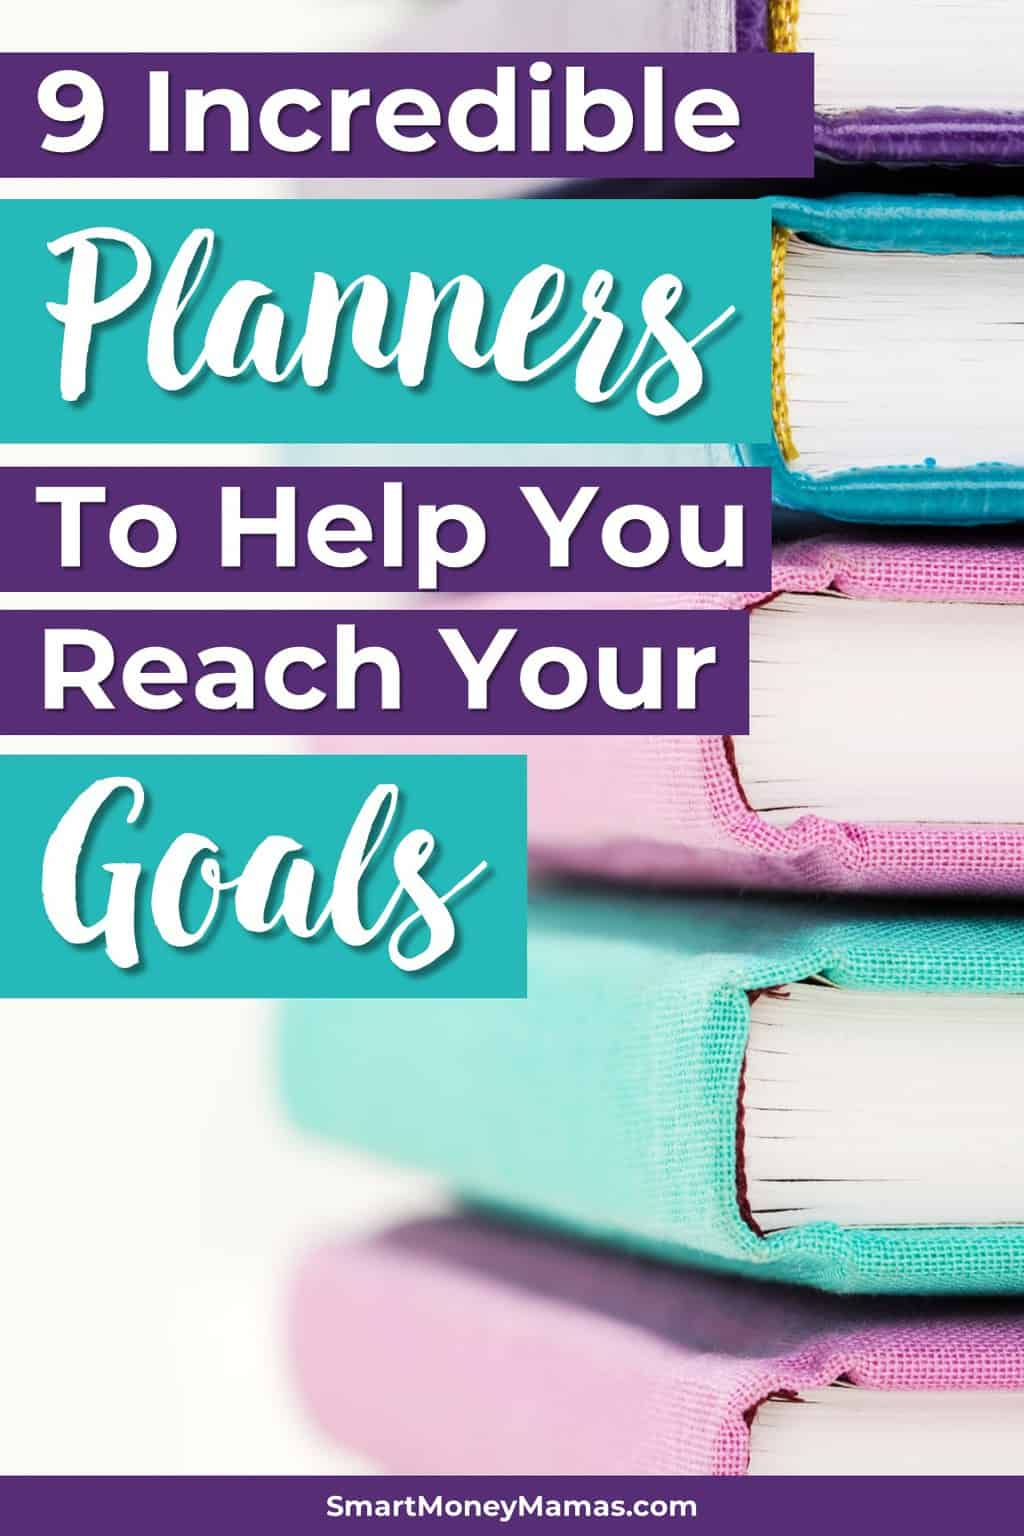 So many great planners for moms! I really love the Very Busy Planner. Definitely ordering my 2019 planner from this list - I want to start a business this year and balancing it with the kids schedule is going to be tough! #planners #2019goals #momlife #mompreneur #organization